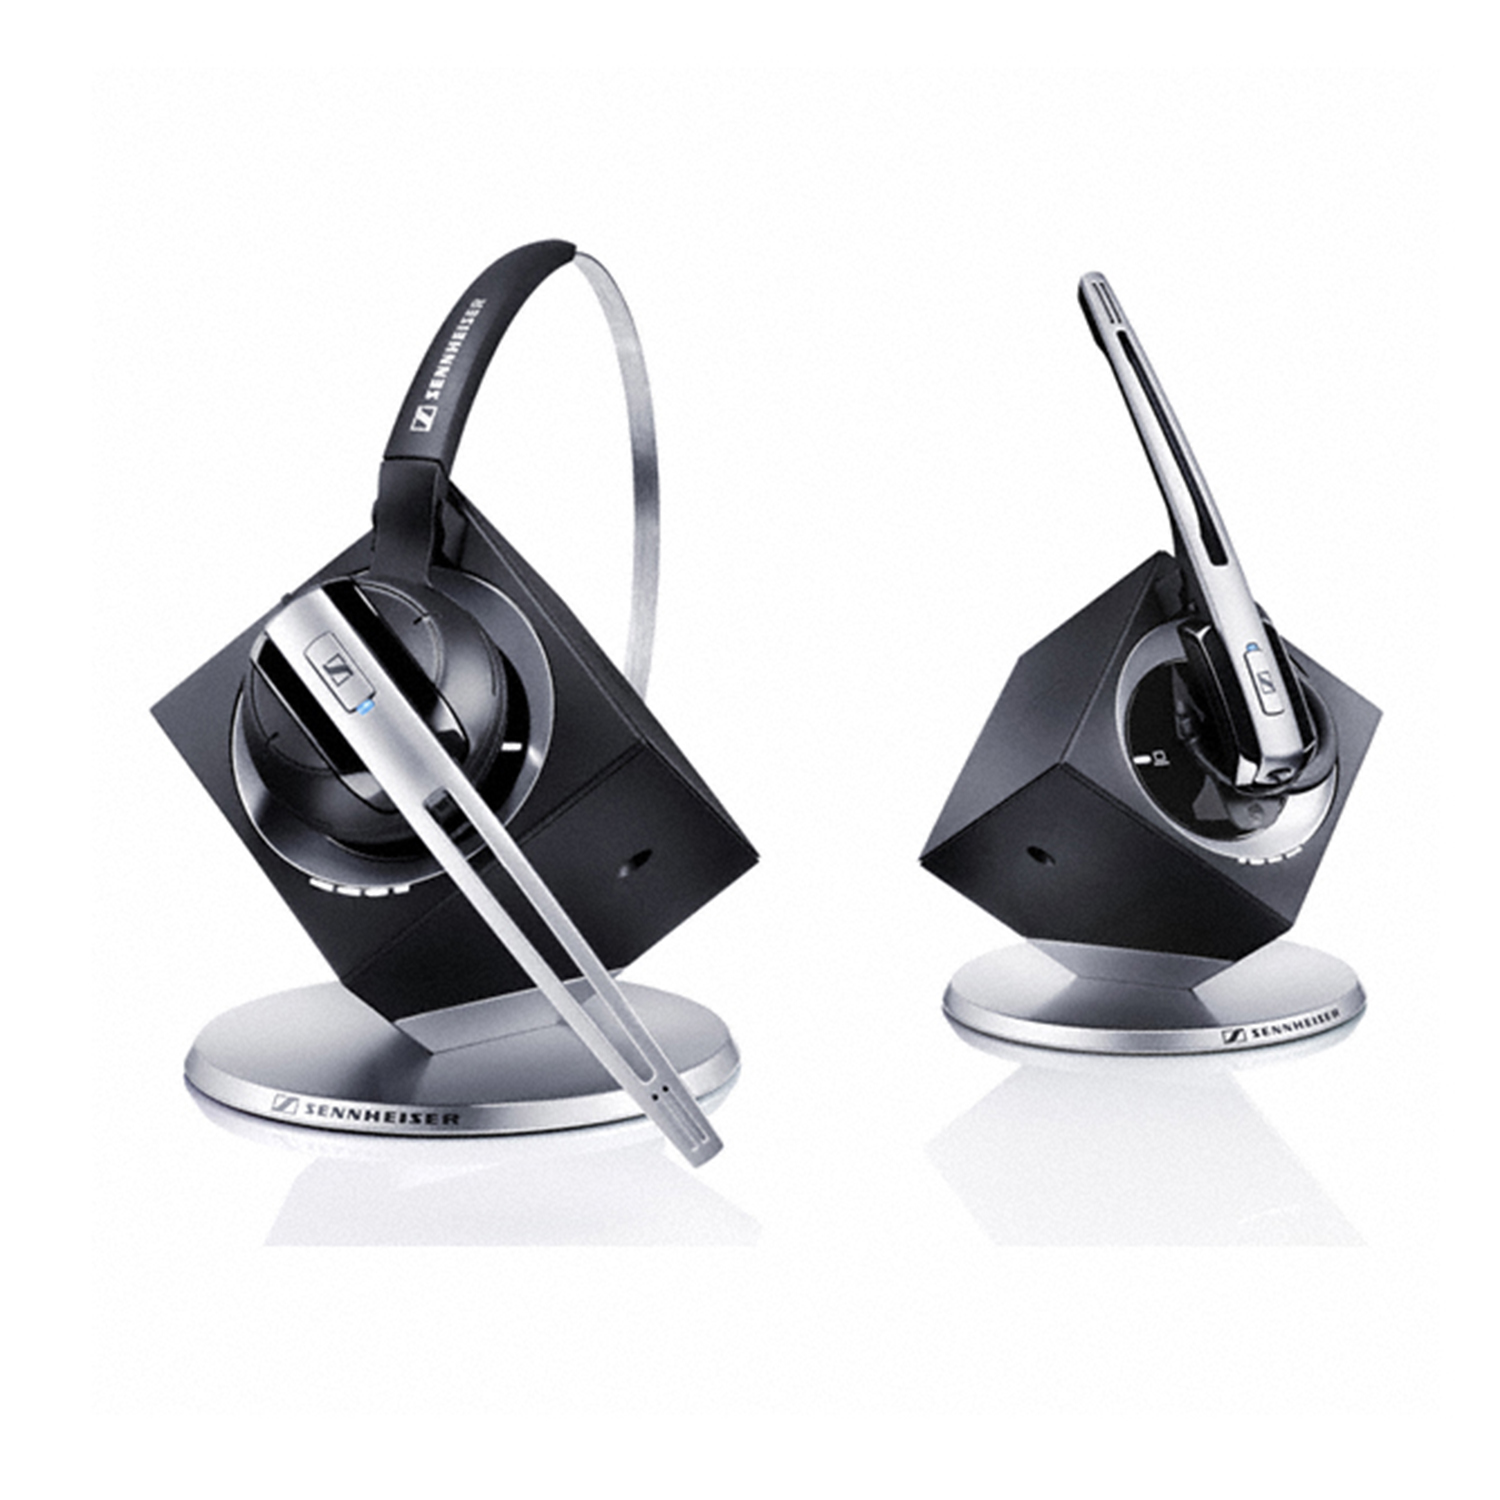 Sennheiser DW10 Office Monaural DECT Noise Cancelling Wireless Headset